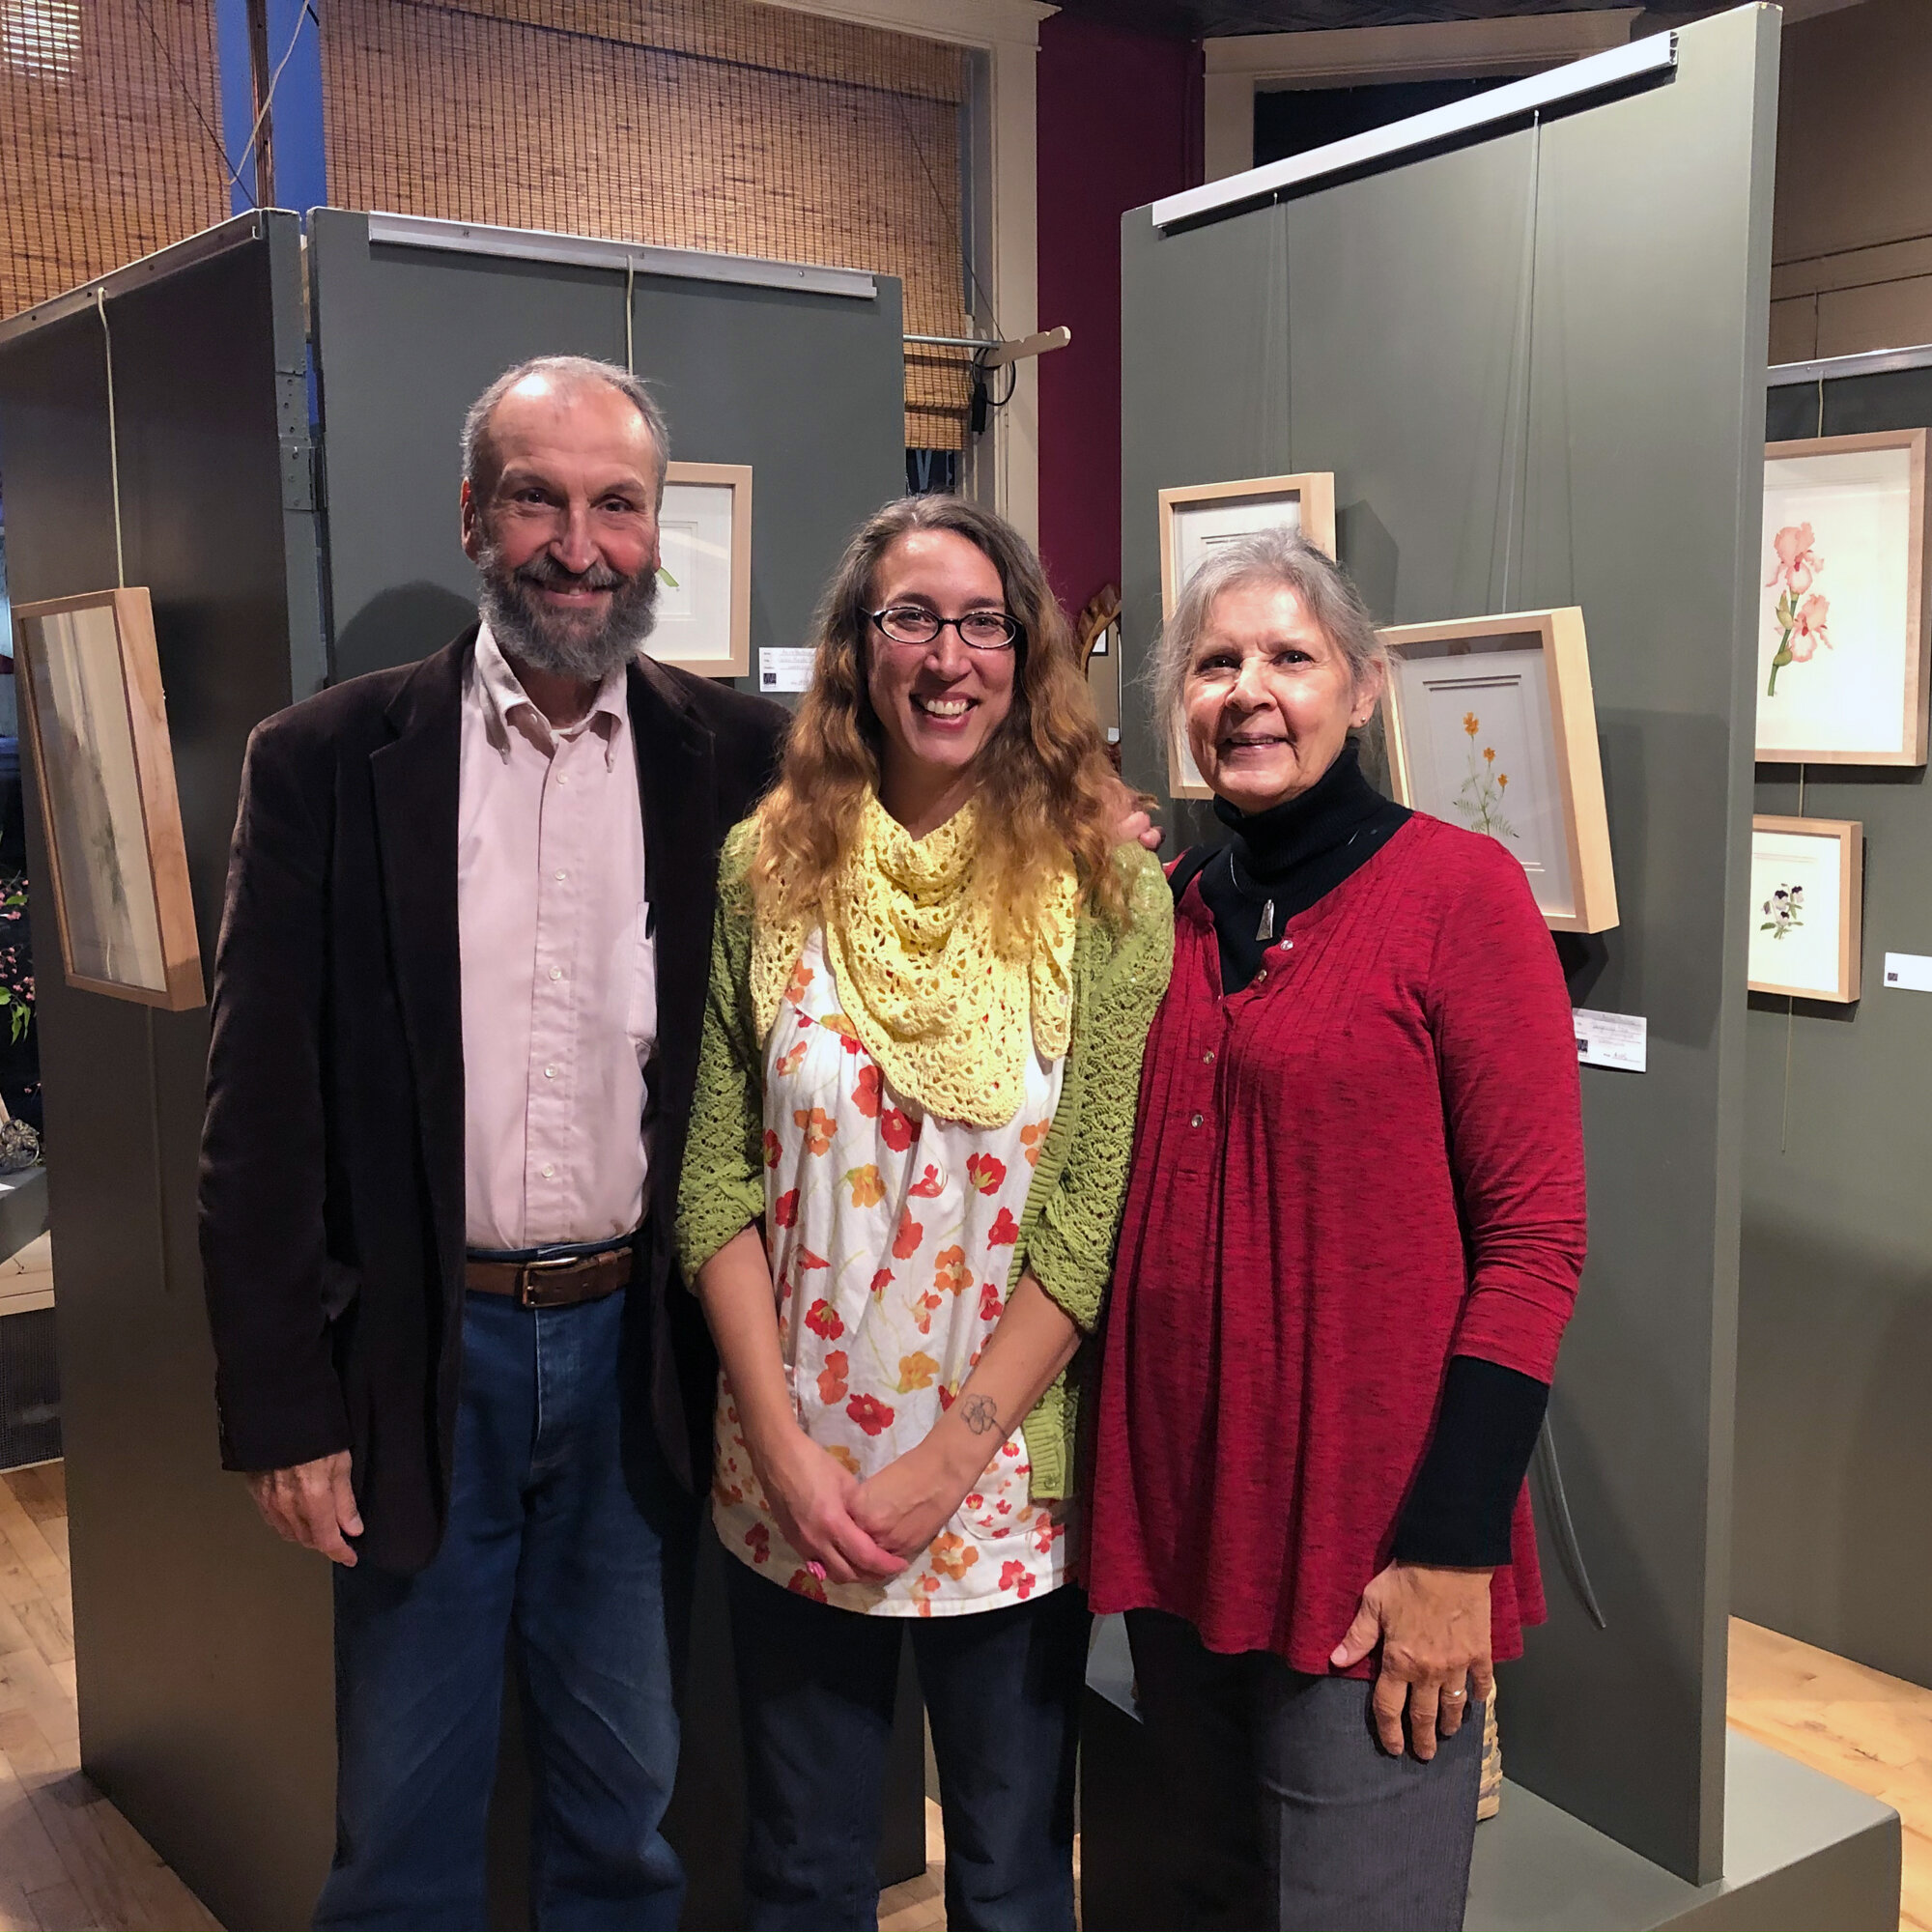 Anne Butera with Her Parents at the Opening Reception of Her Show at Viva Gallery in Viroqua Wisconsin